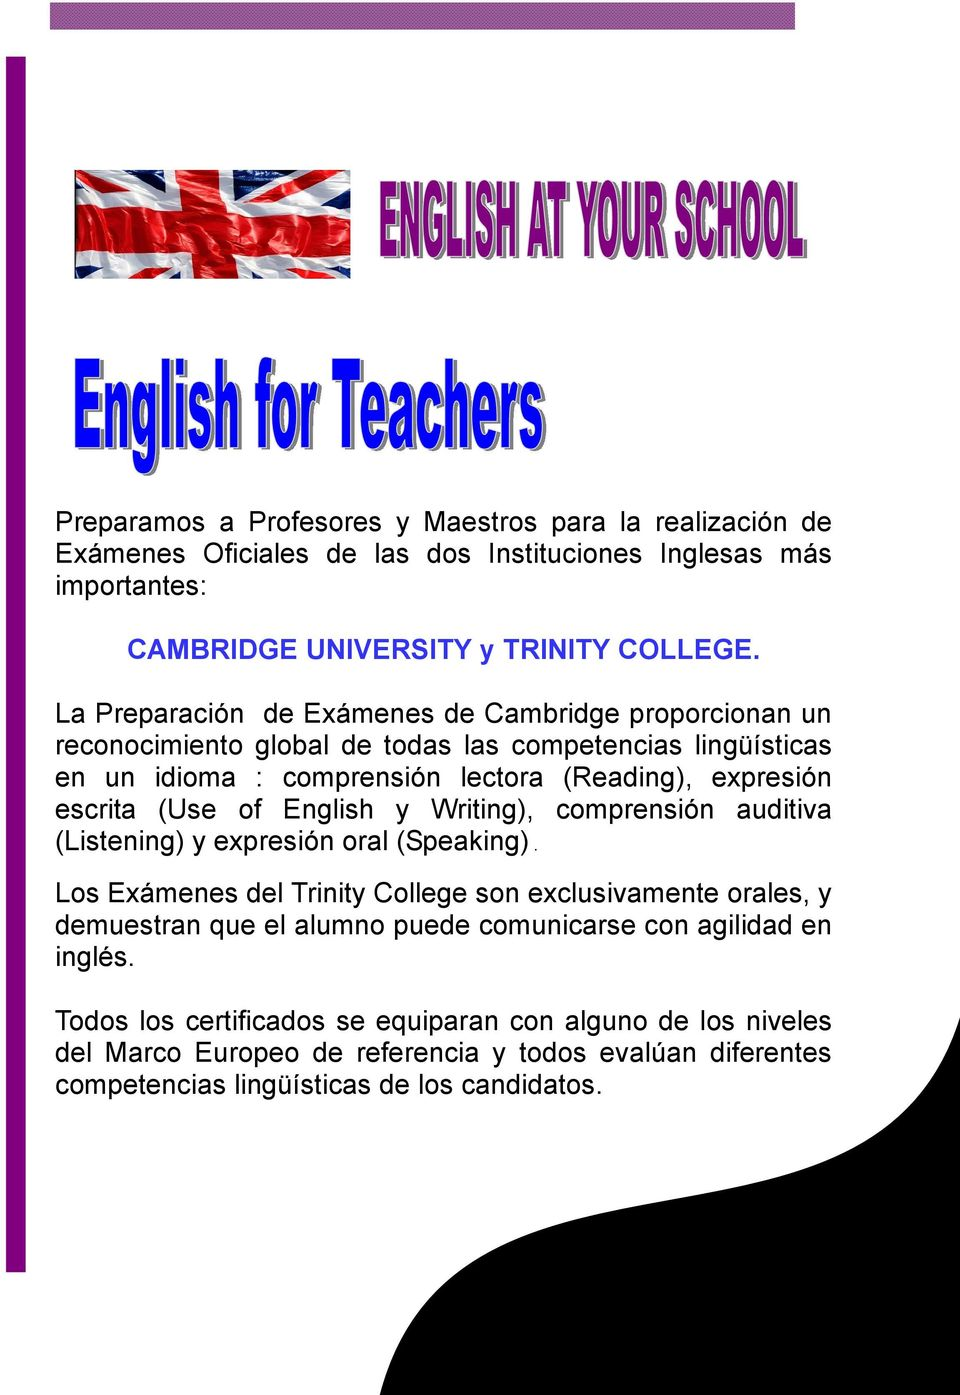 (Use of English y Writing), comprensión auditiva (Listening) y expresión oral (Speaking).